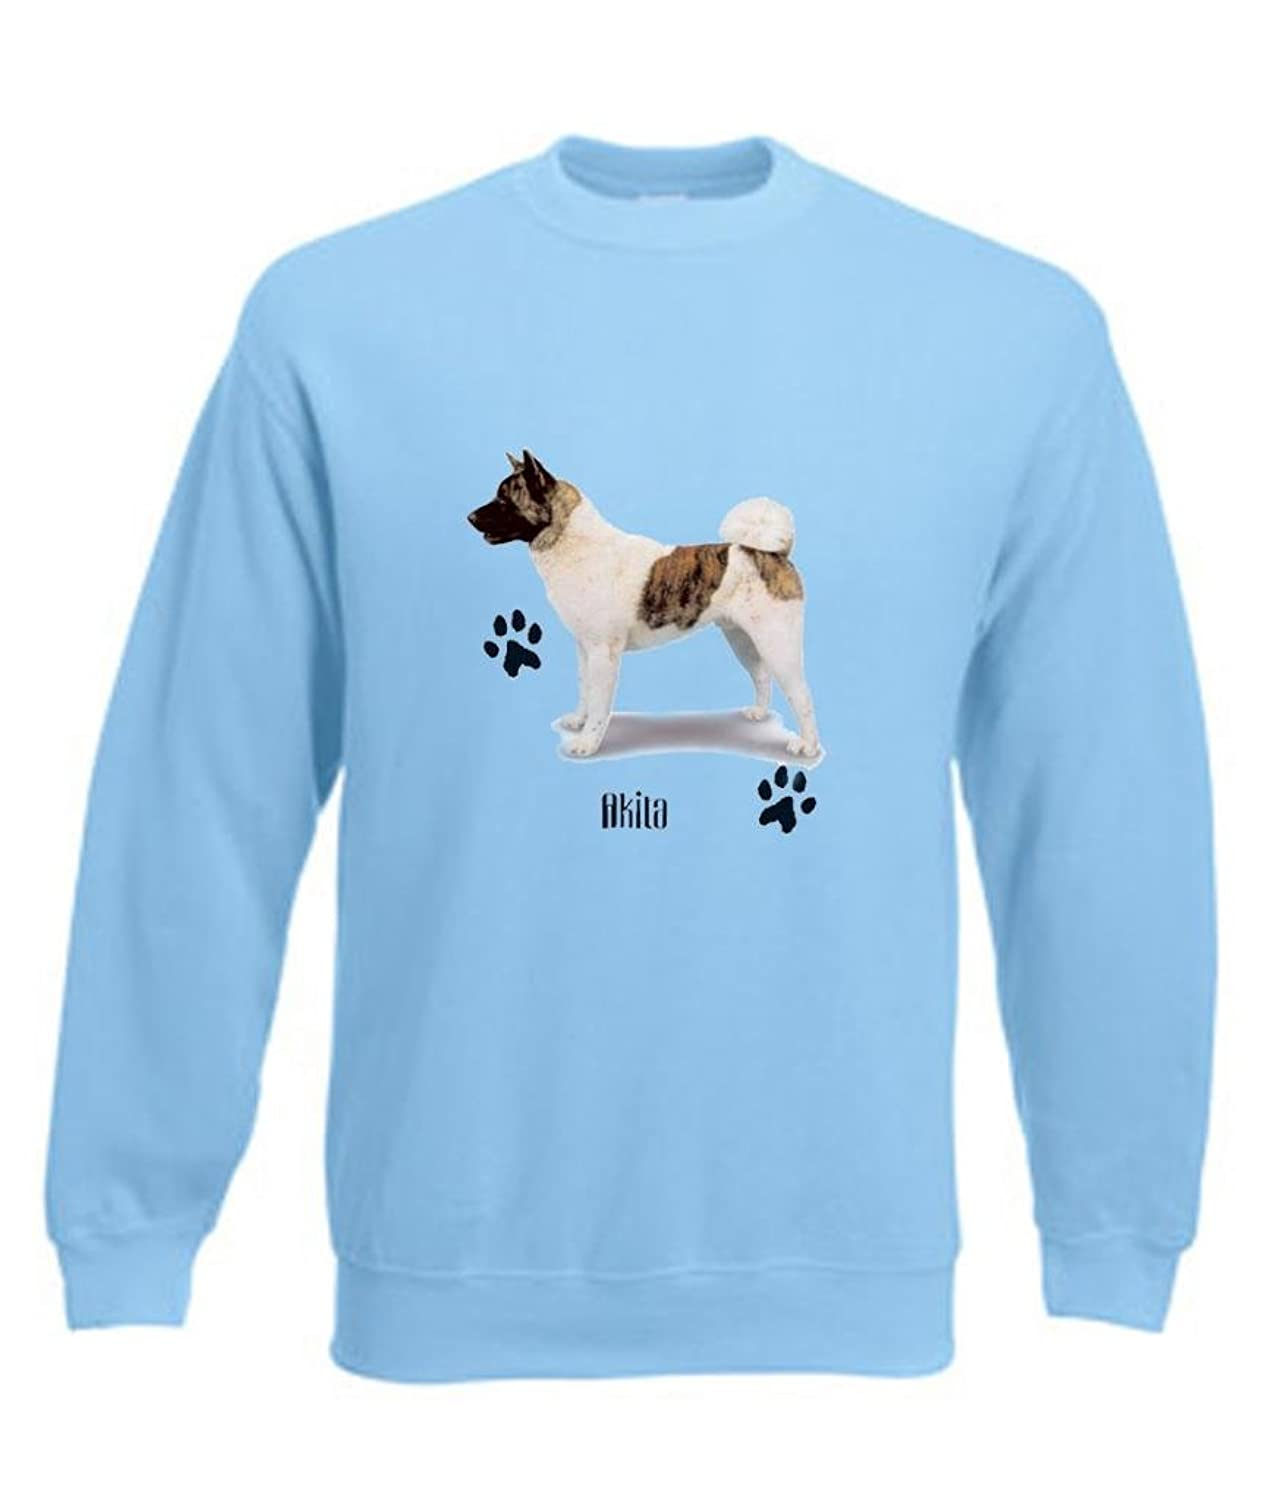 Simply Tees Akita Dog With Paw Prints Adult's Sweatshirt